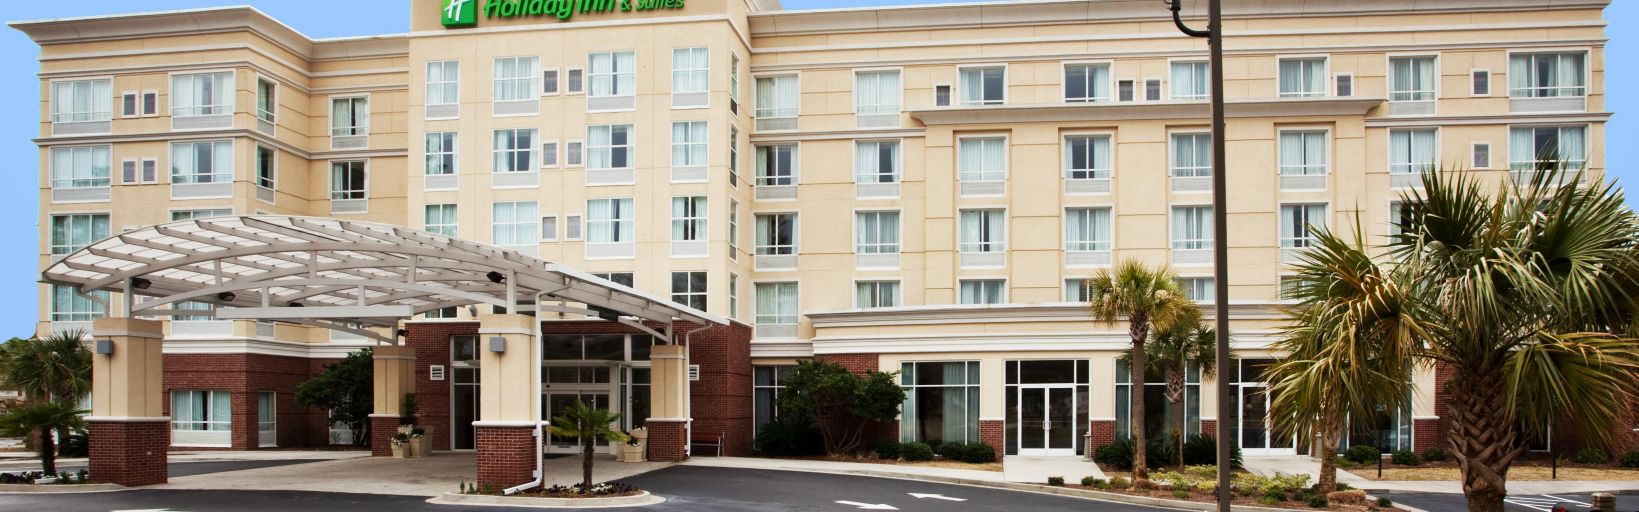 Holiday Inn Brunswick Ga Hotel Exterior